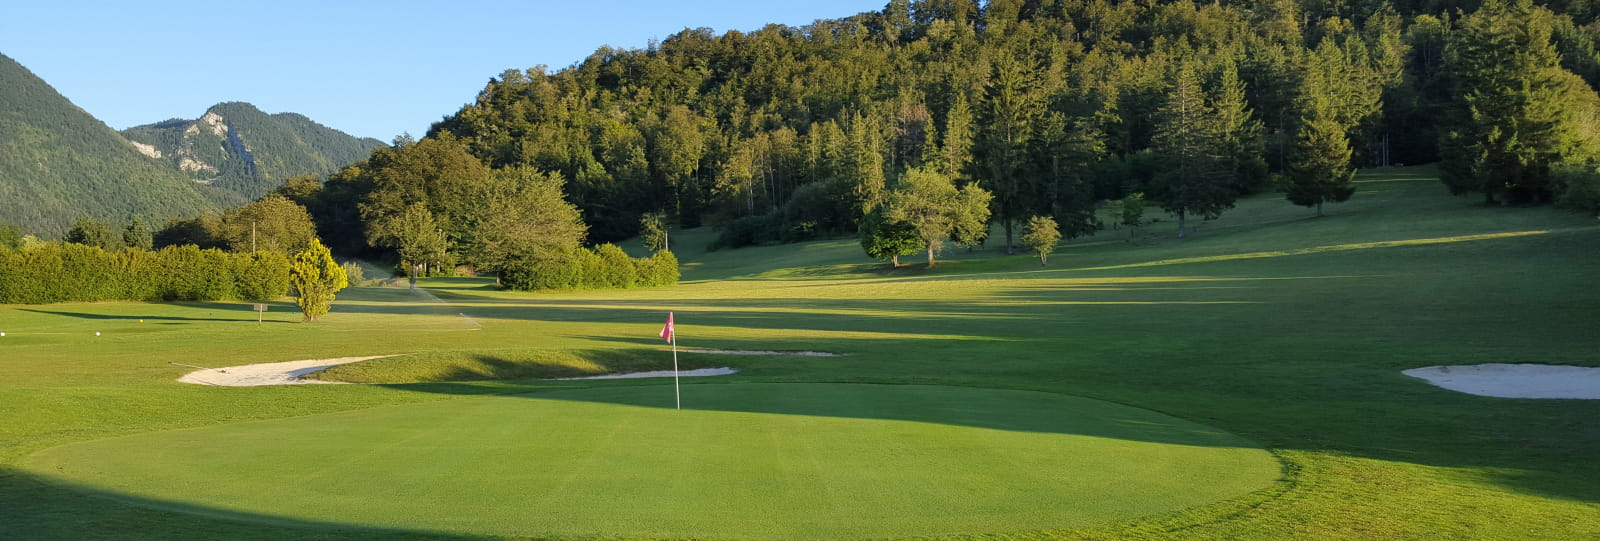 Golf Club du Vercors